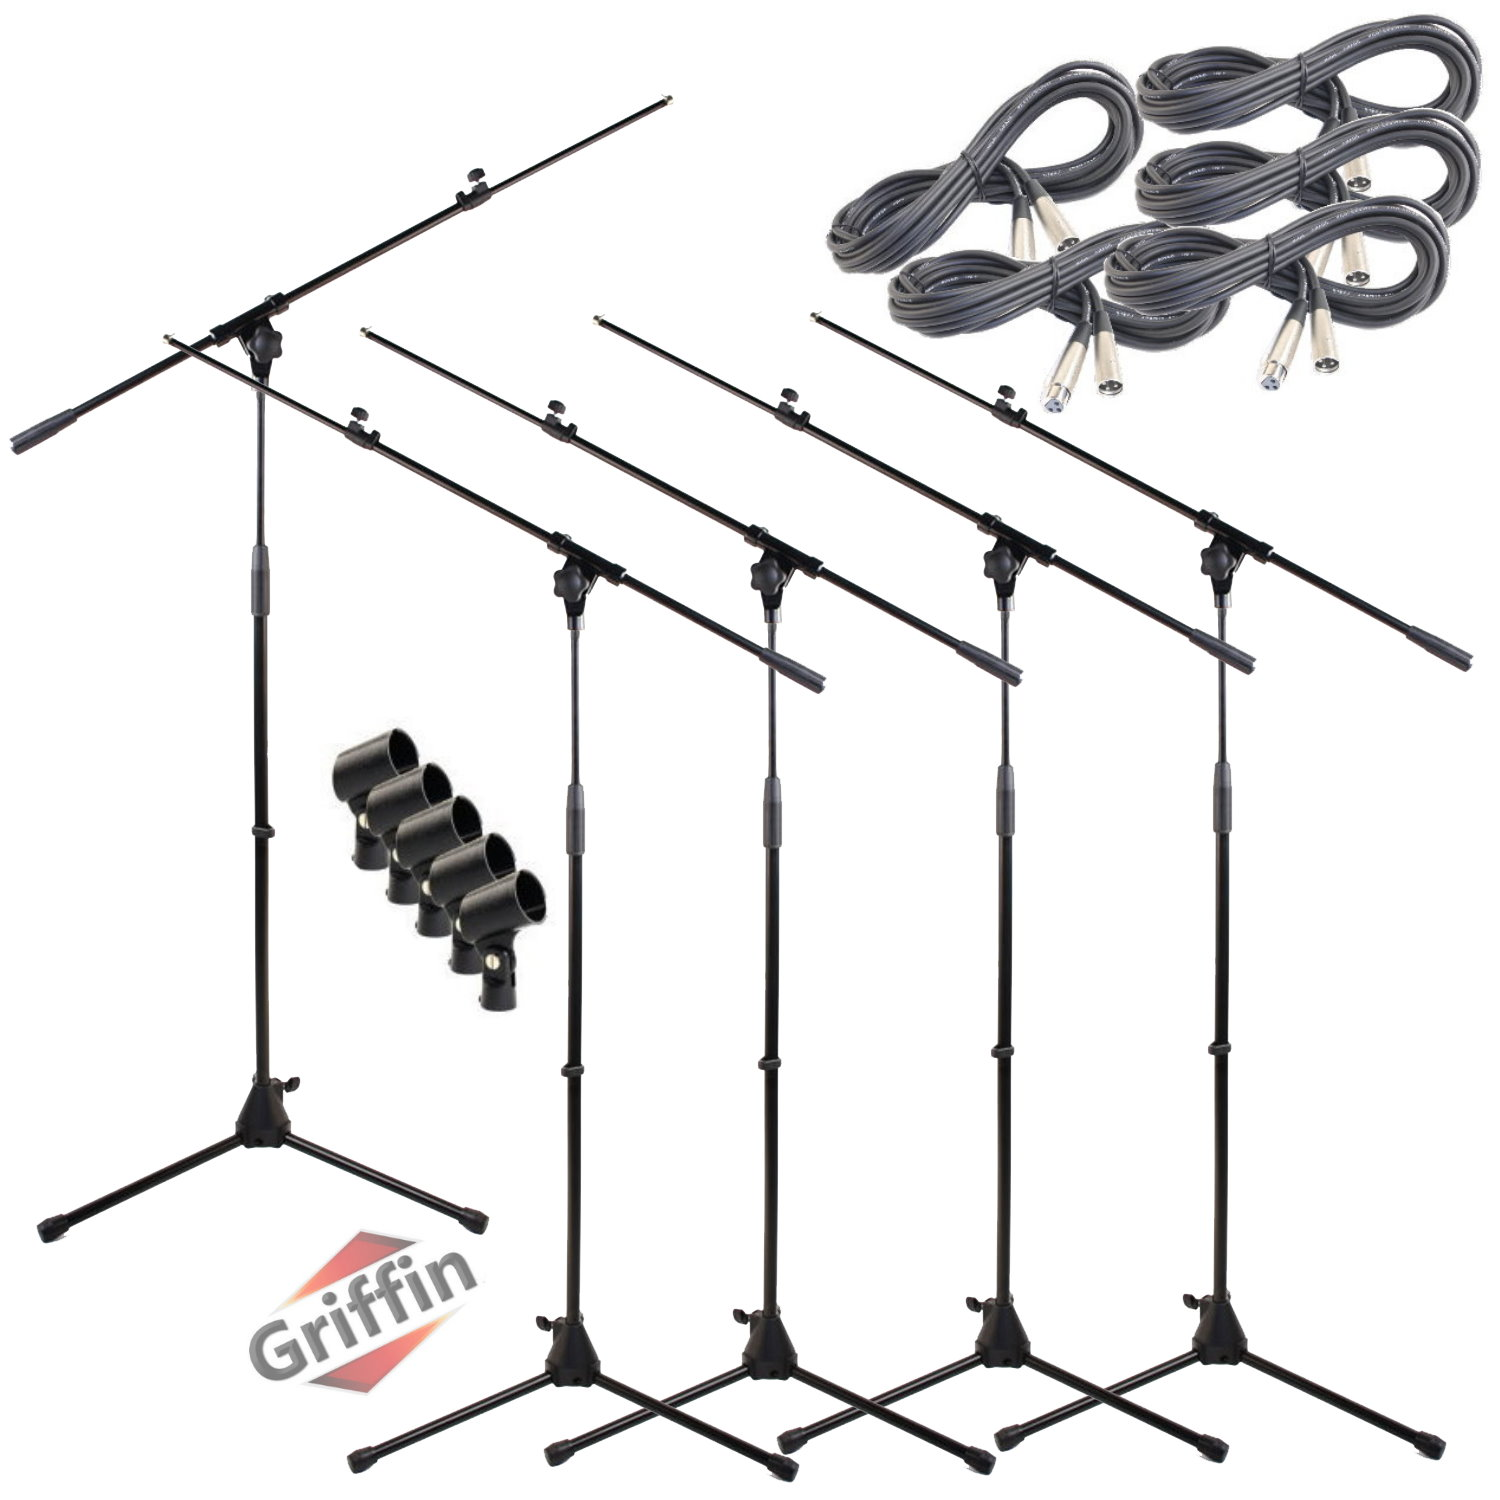 Mic Stand Package with XLR Mic Cables and Clips 5 Pack by Griffin